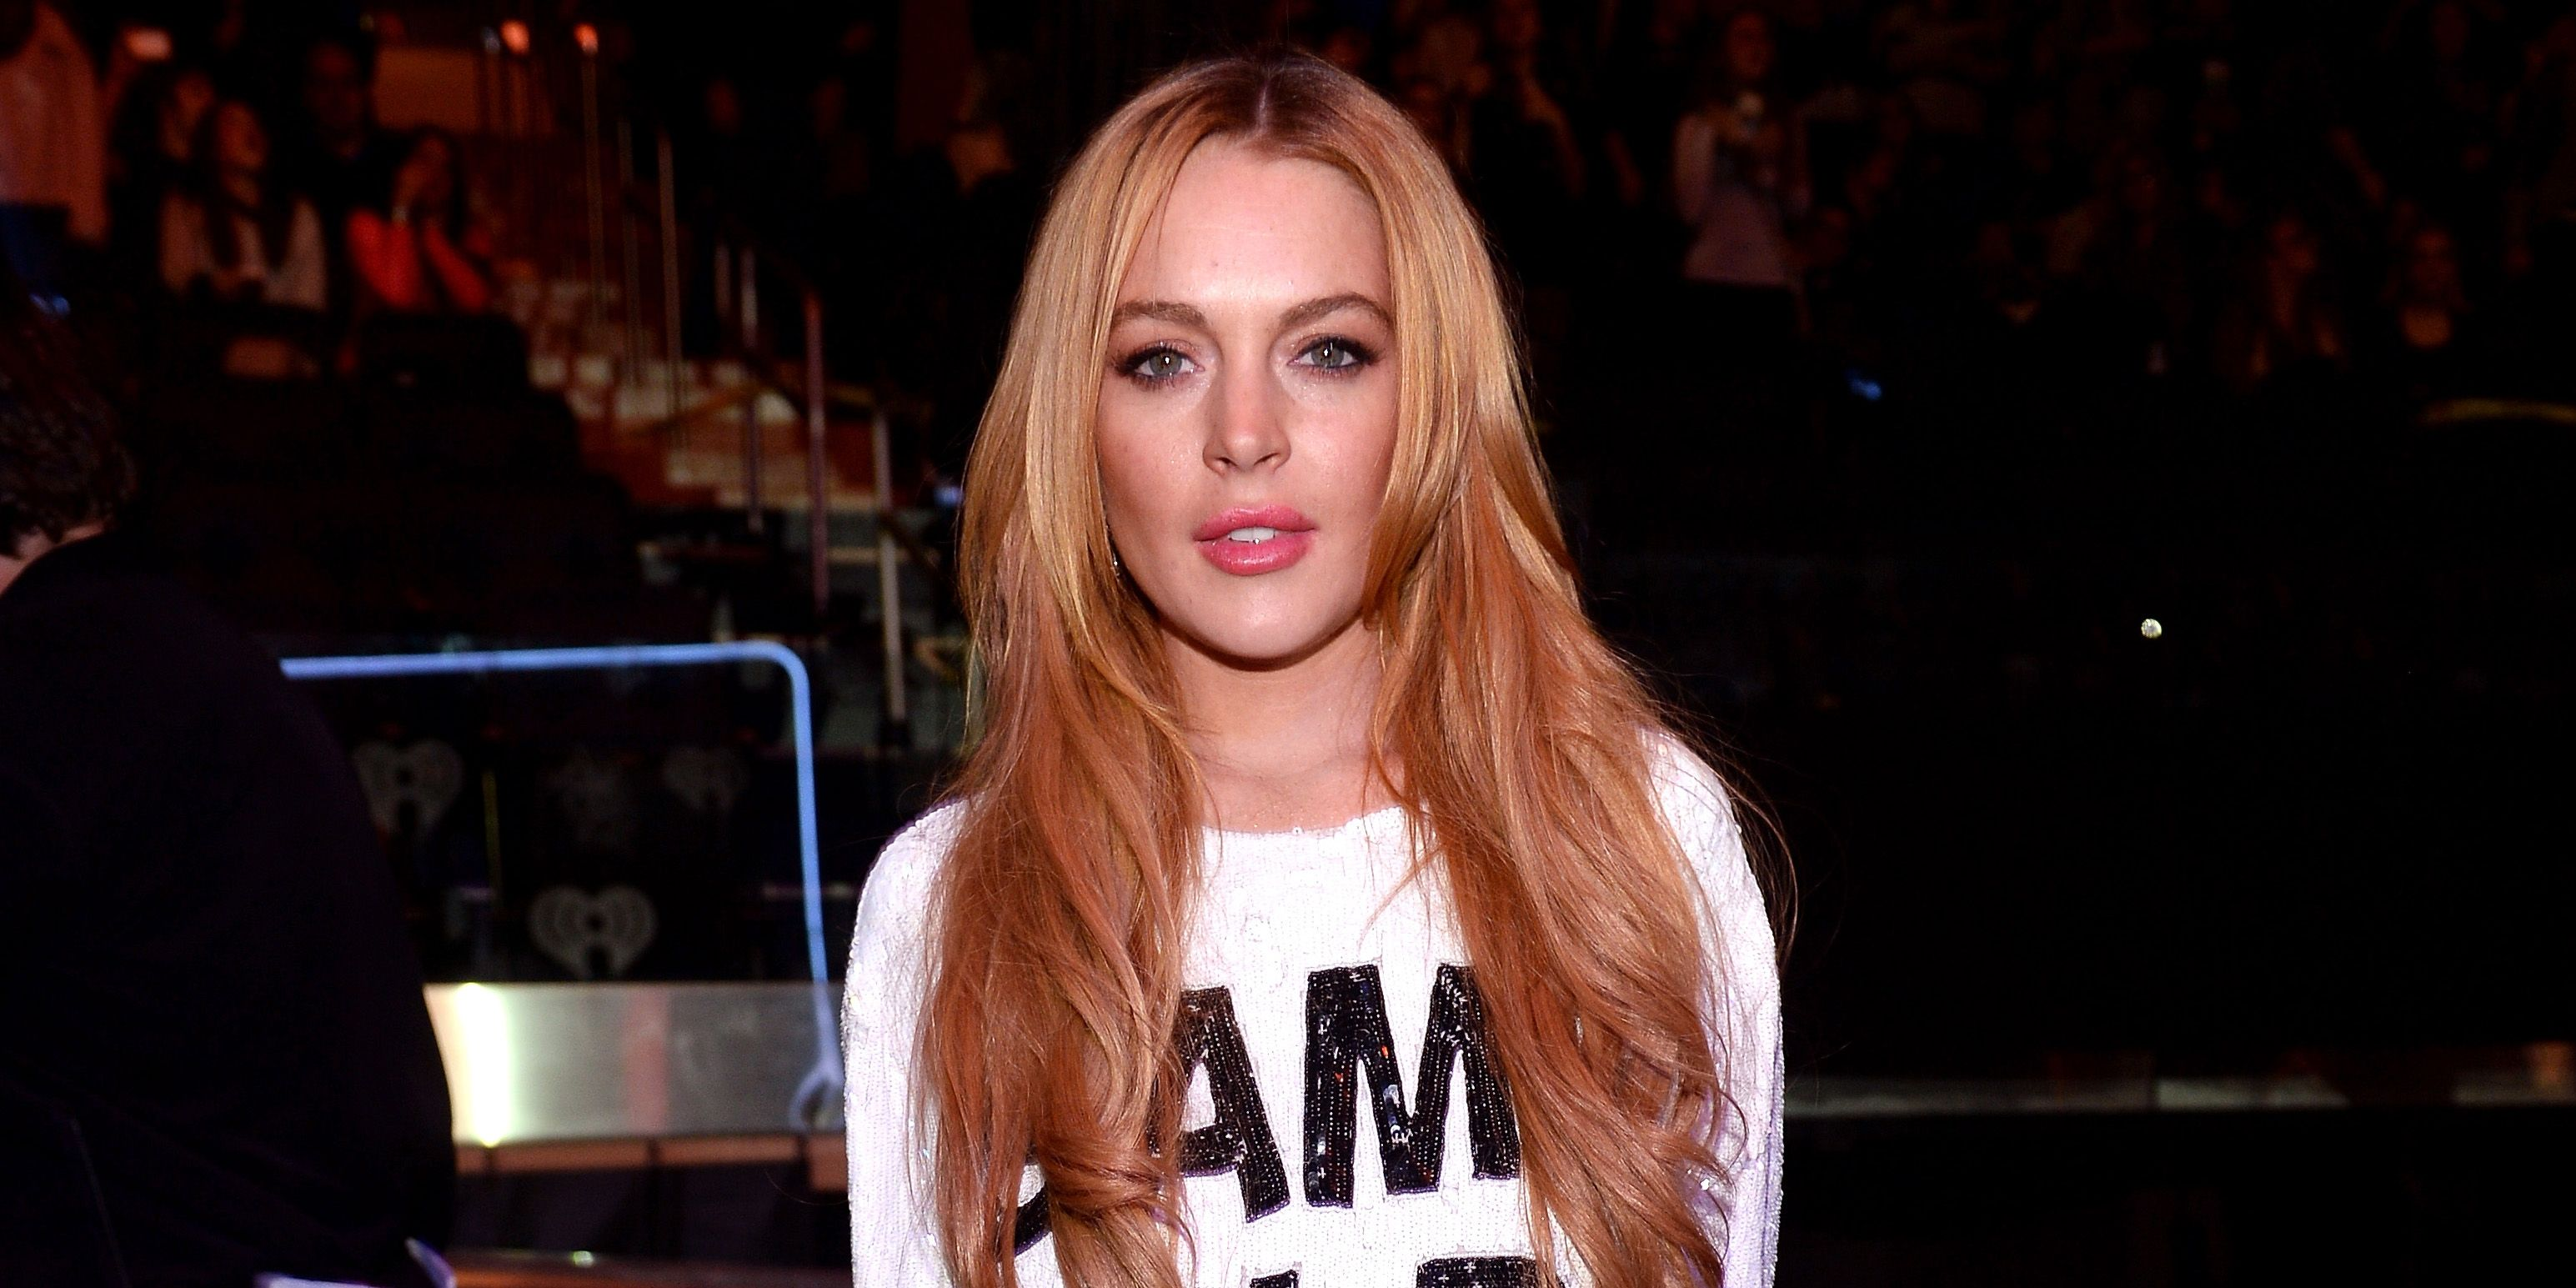 Images Lindsay Lohan nudes (64 foto and video), Sexy, Leaked, Selfie, swimsuit 2006